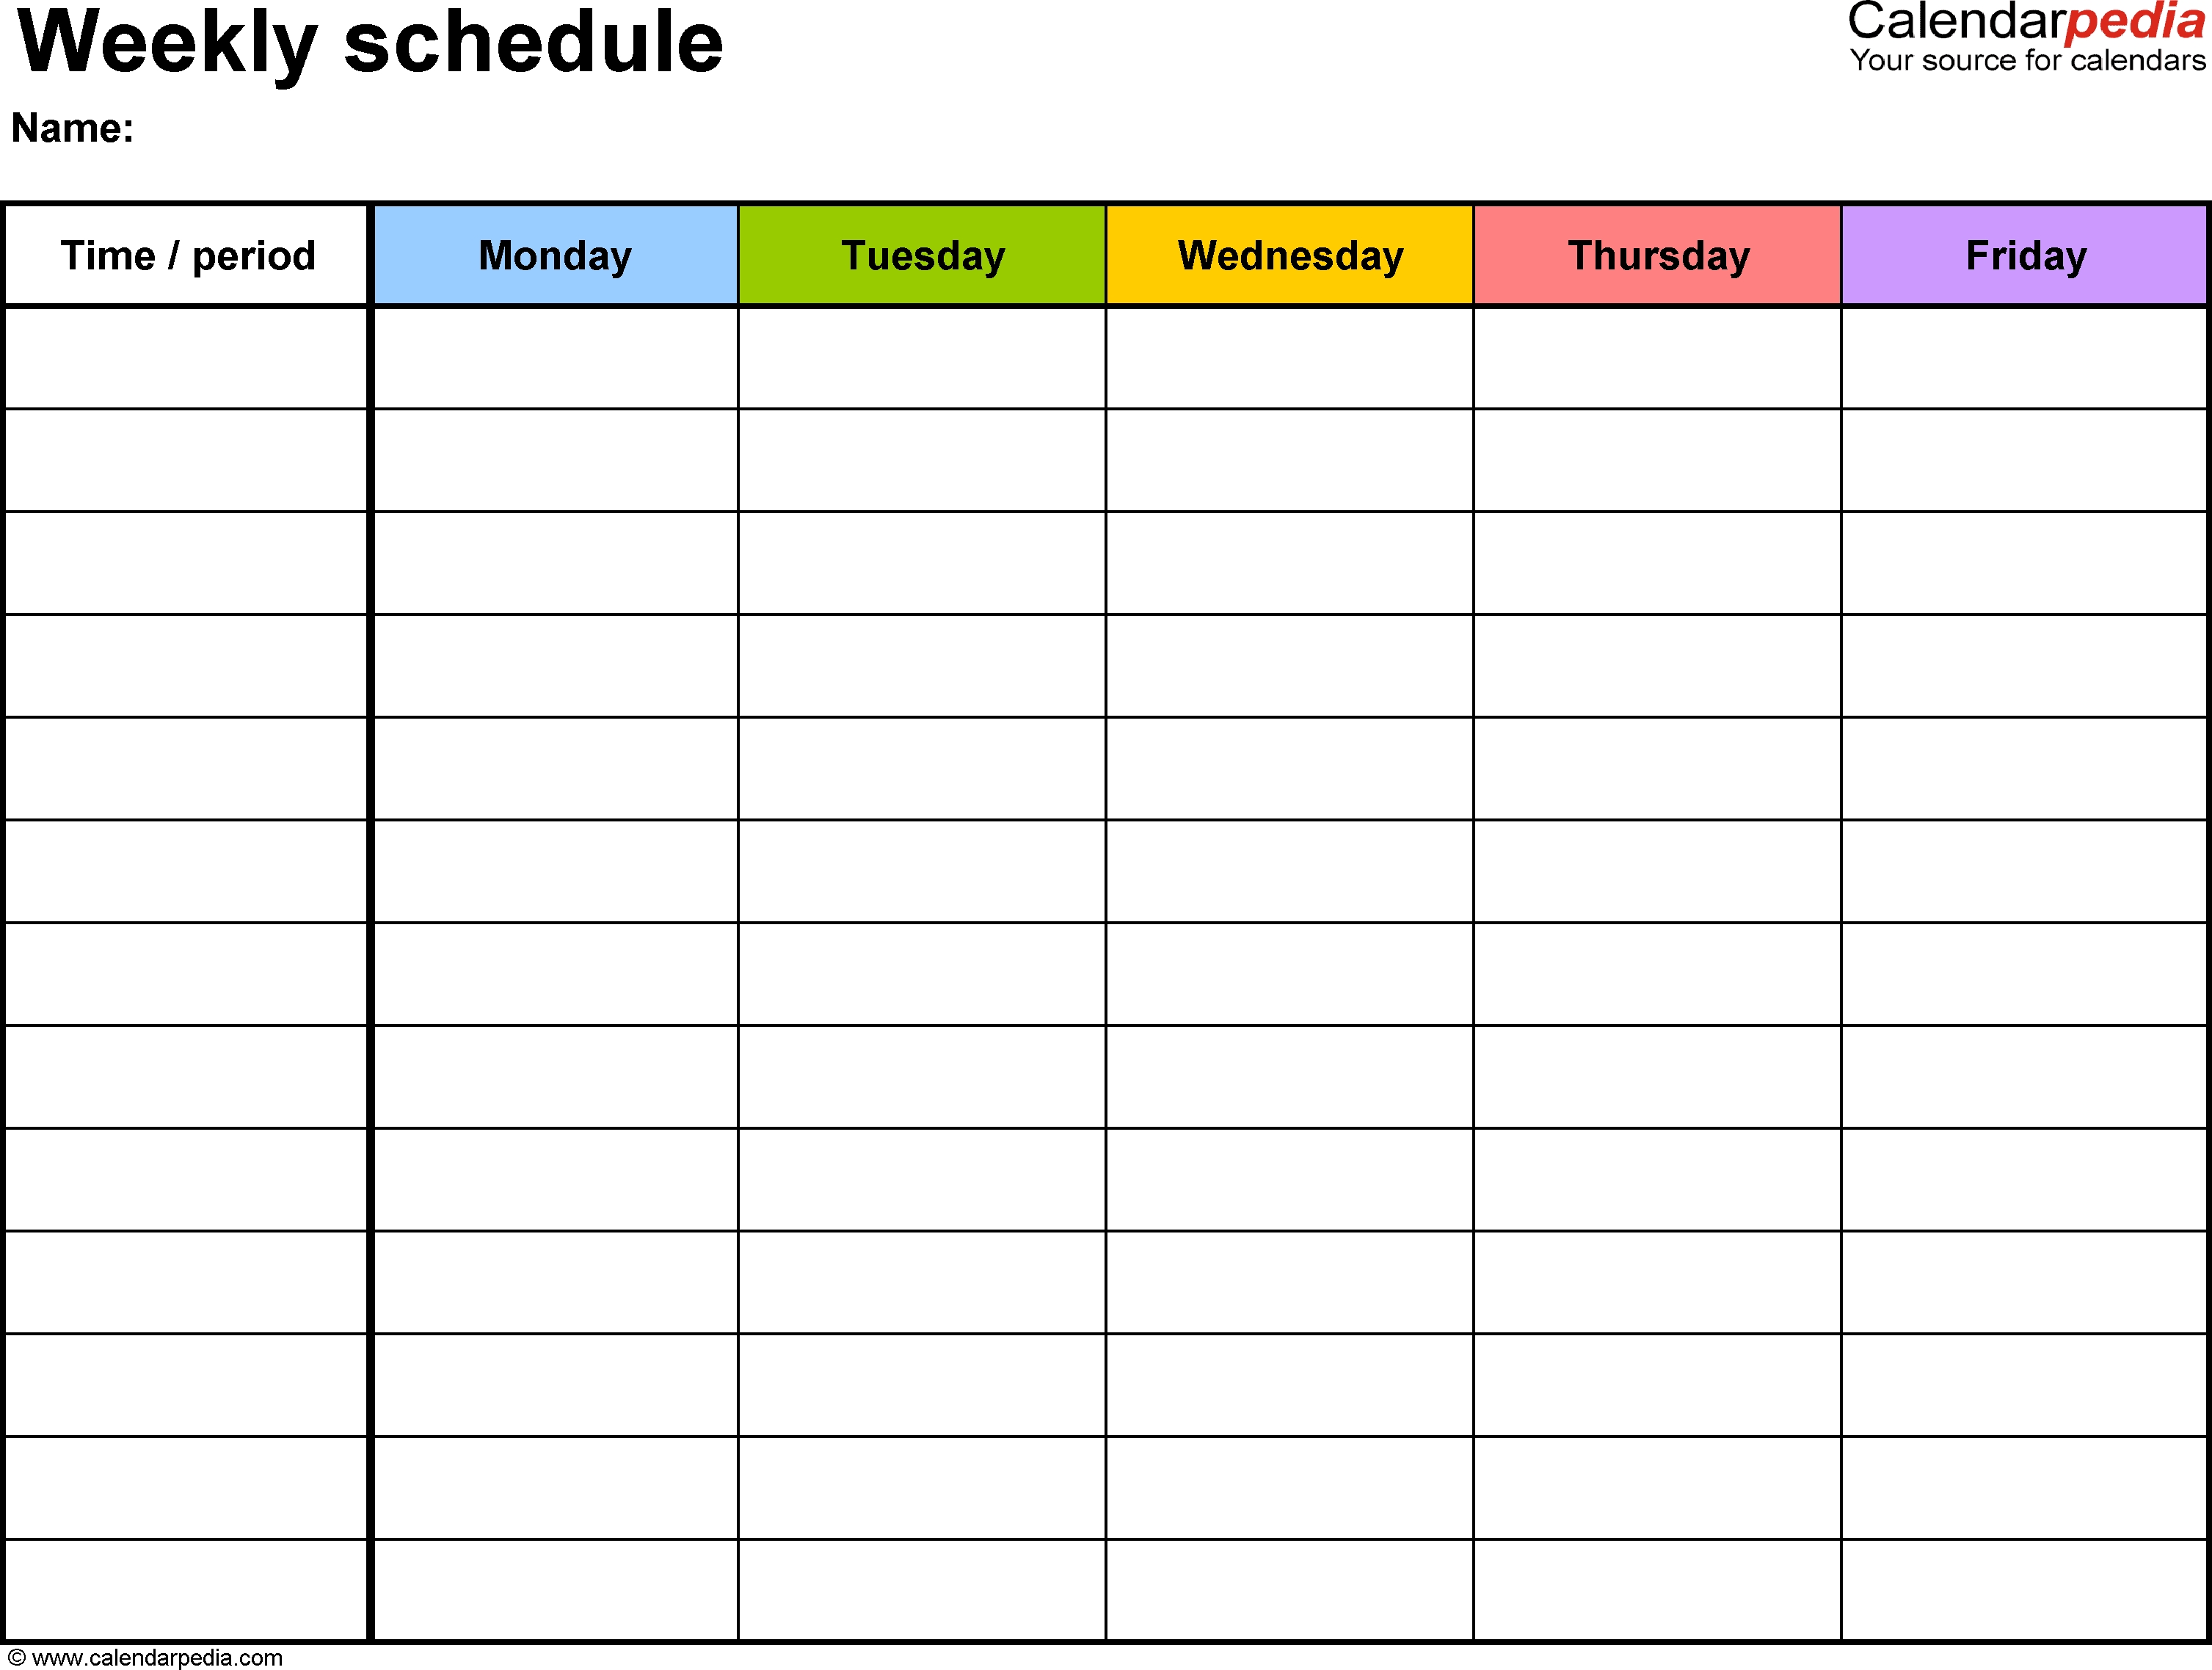 Free Weekly Schedule Templates For Pdf - 18 Templates inside Printable Weekly Planner With Times